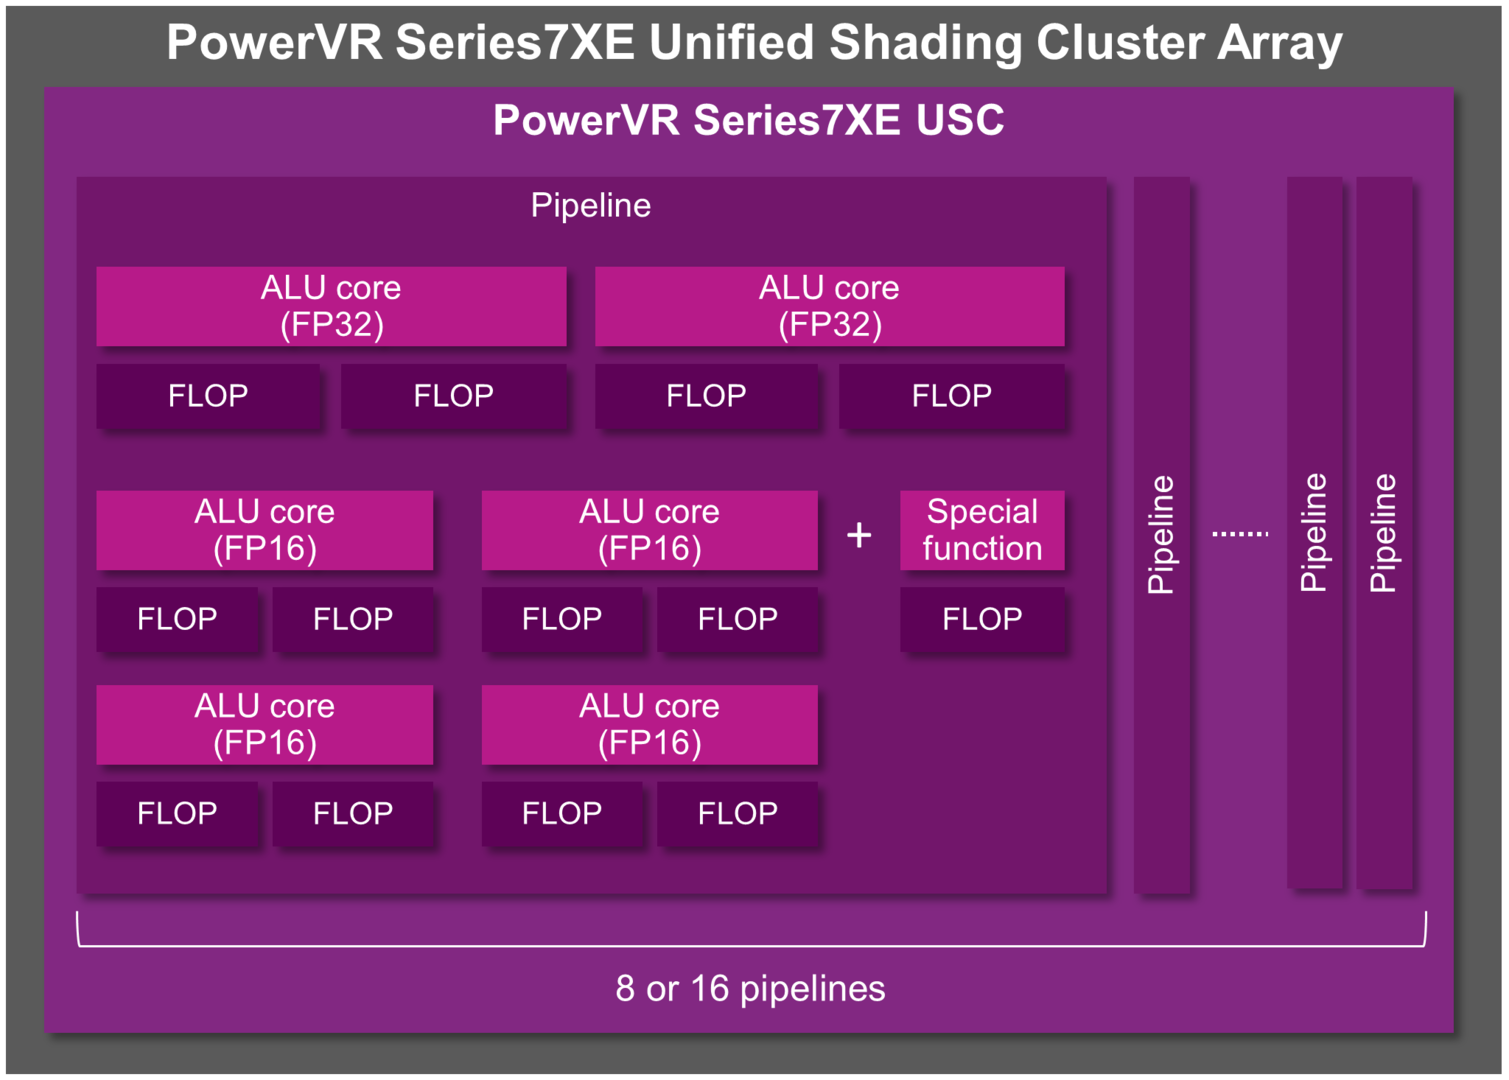 PowerVR Series7XE Unified Shading Cluster